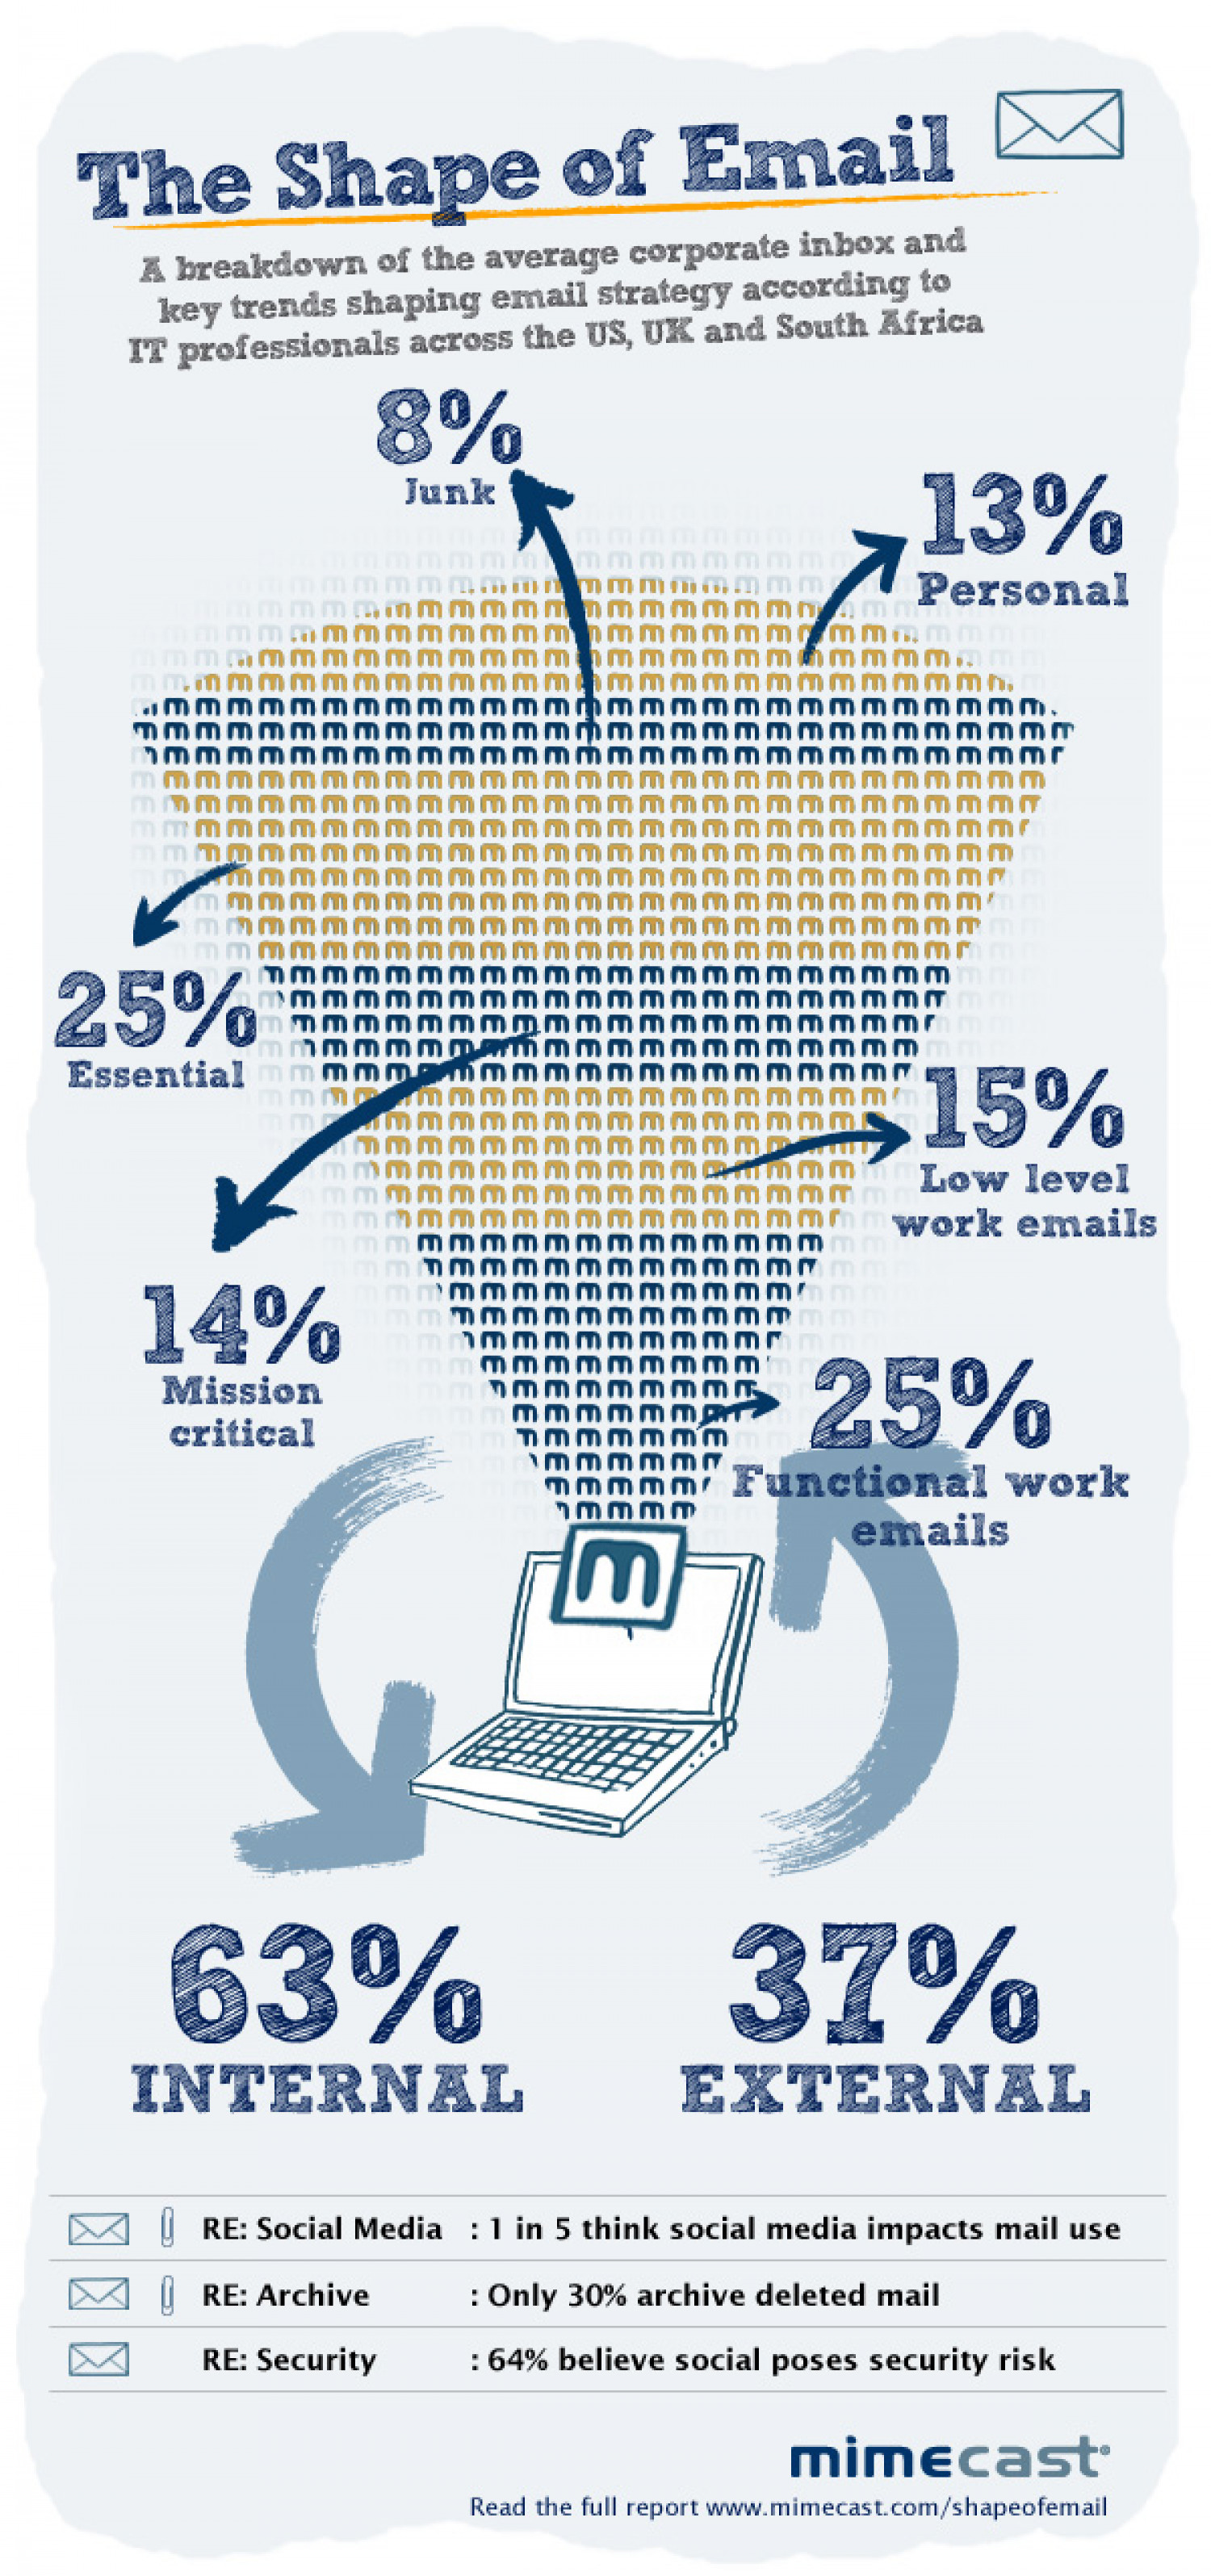 The Shape Of Email - What Do IT Professionals Think? Infographic